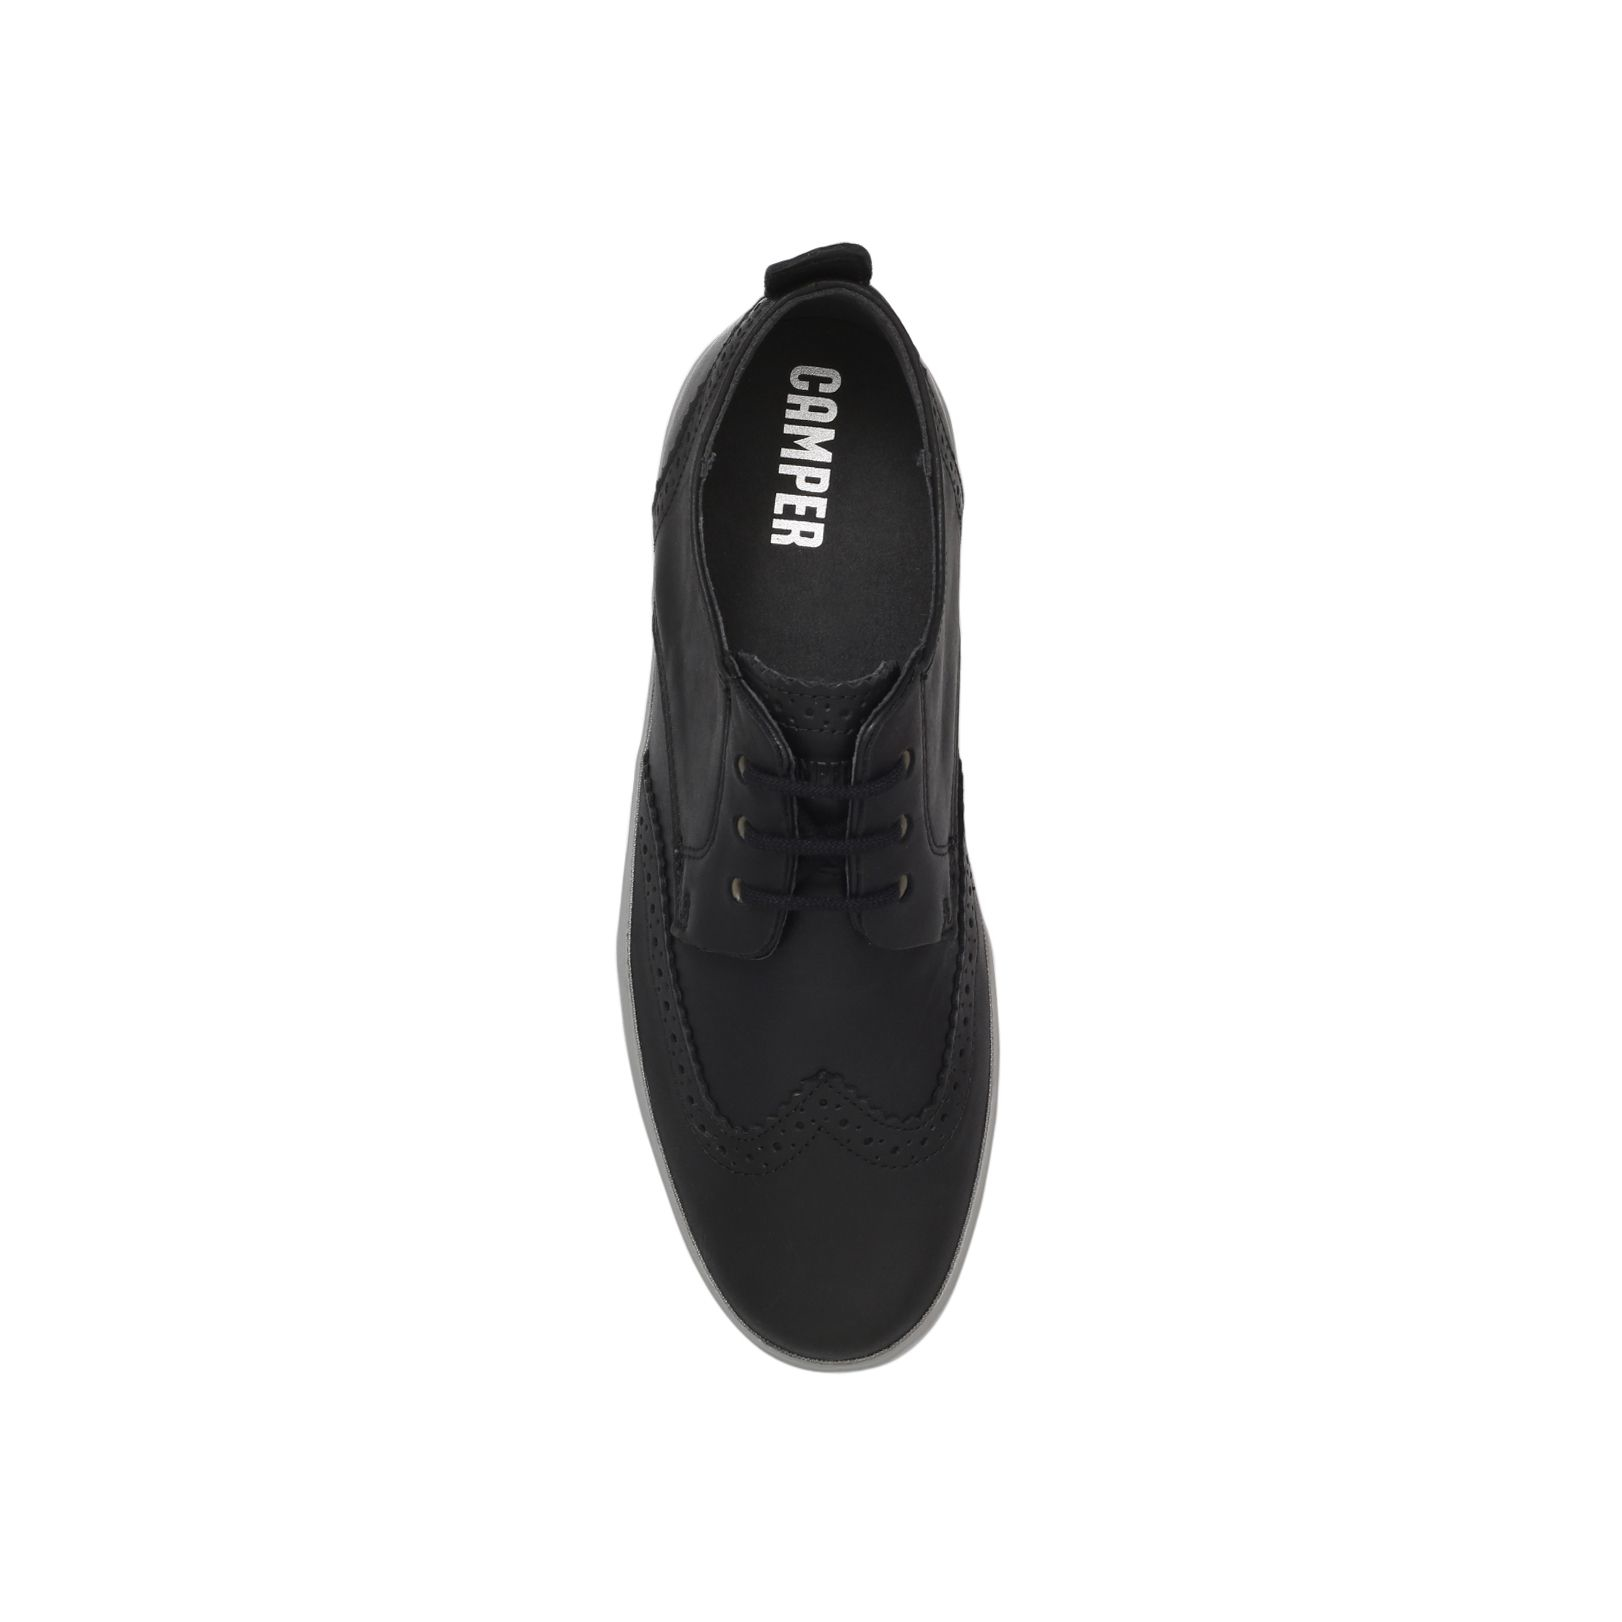 Camper Jim Wc Derby Lace Up Shoe in Black for Men